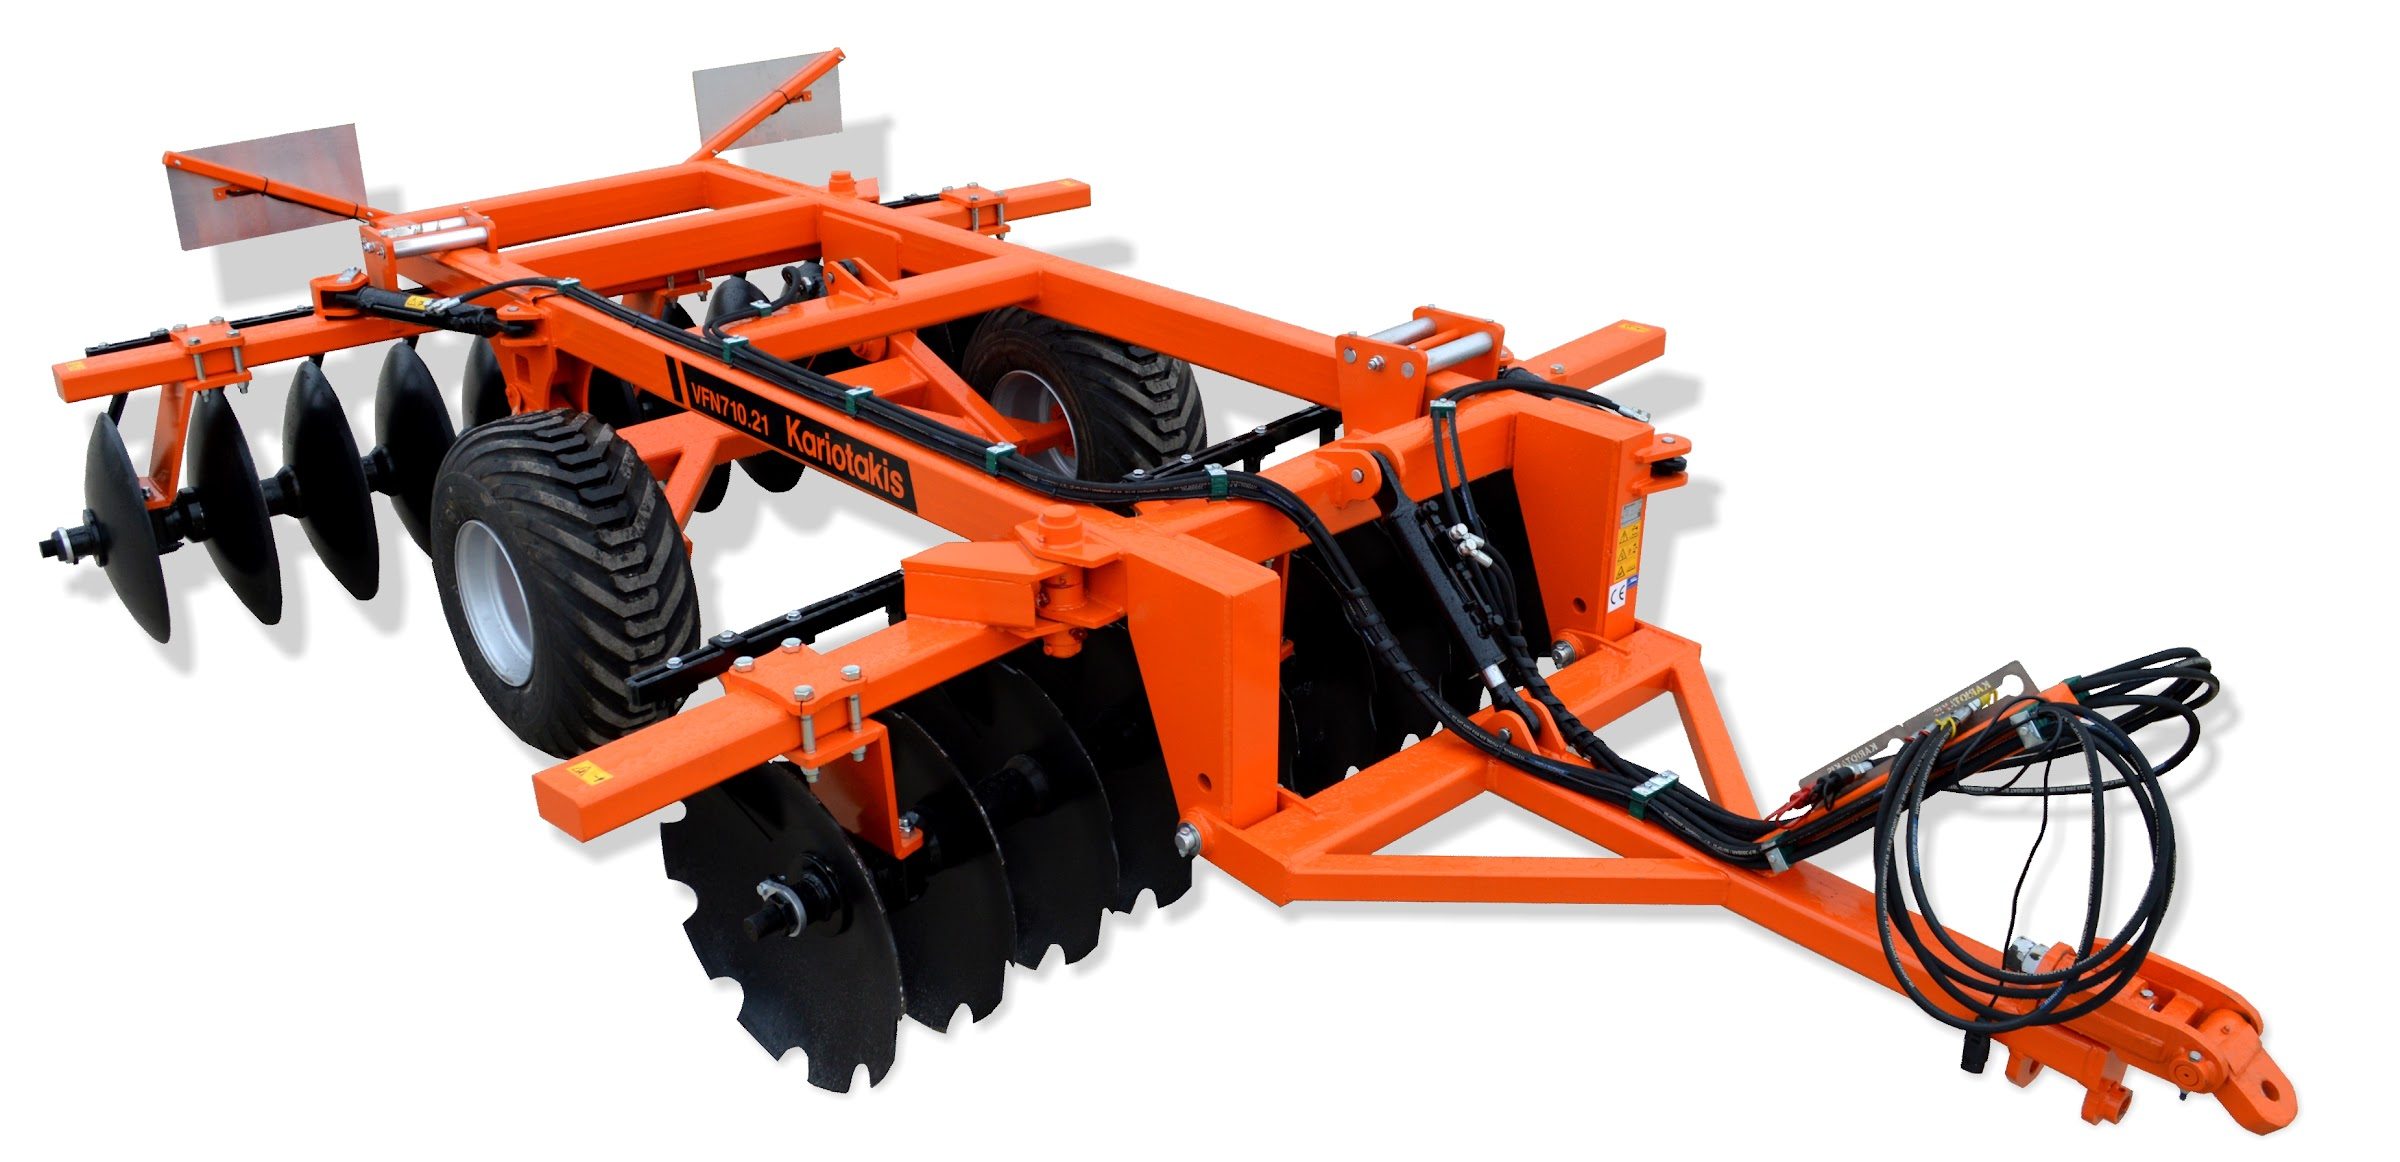 disc harrow kuhn, disc harrow siptec,disc harrow gregoire besson, disc harrow ma/ag, disc harrow lemken